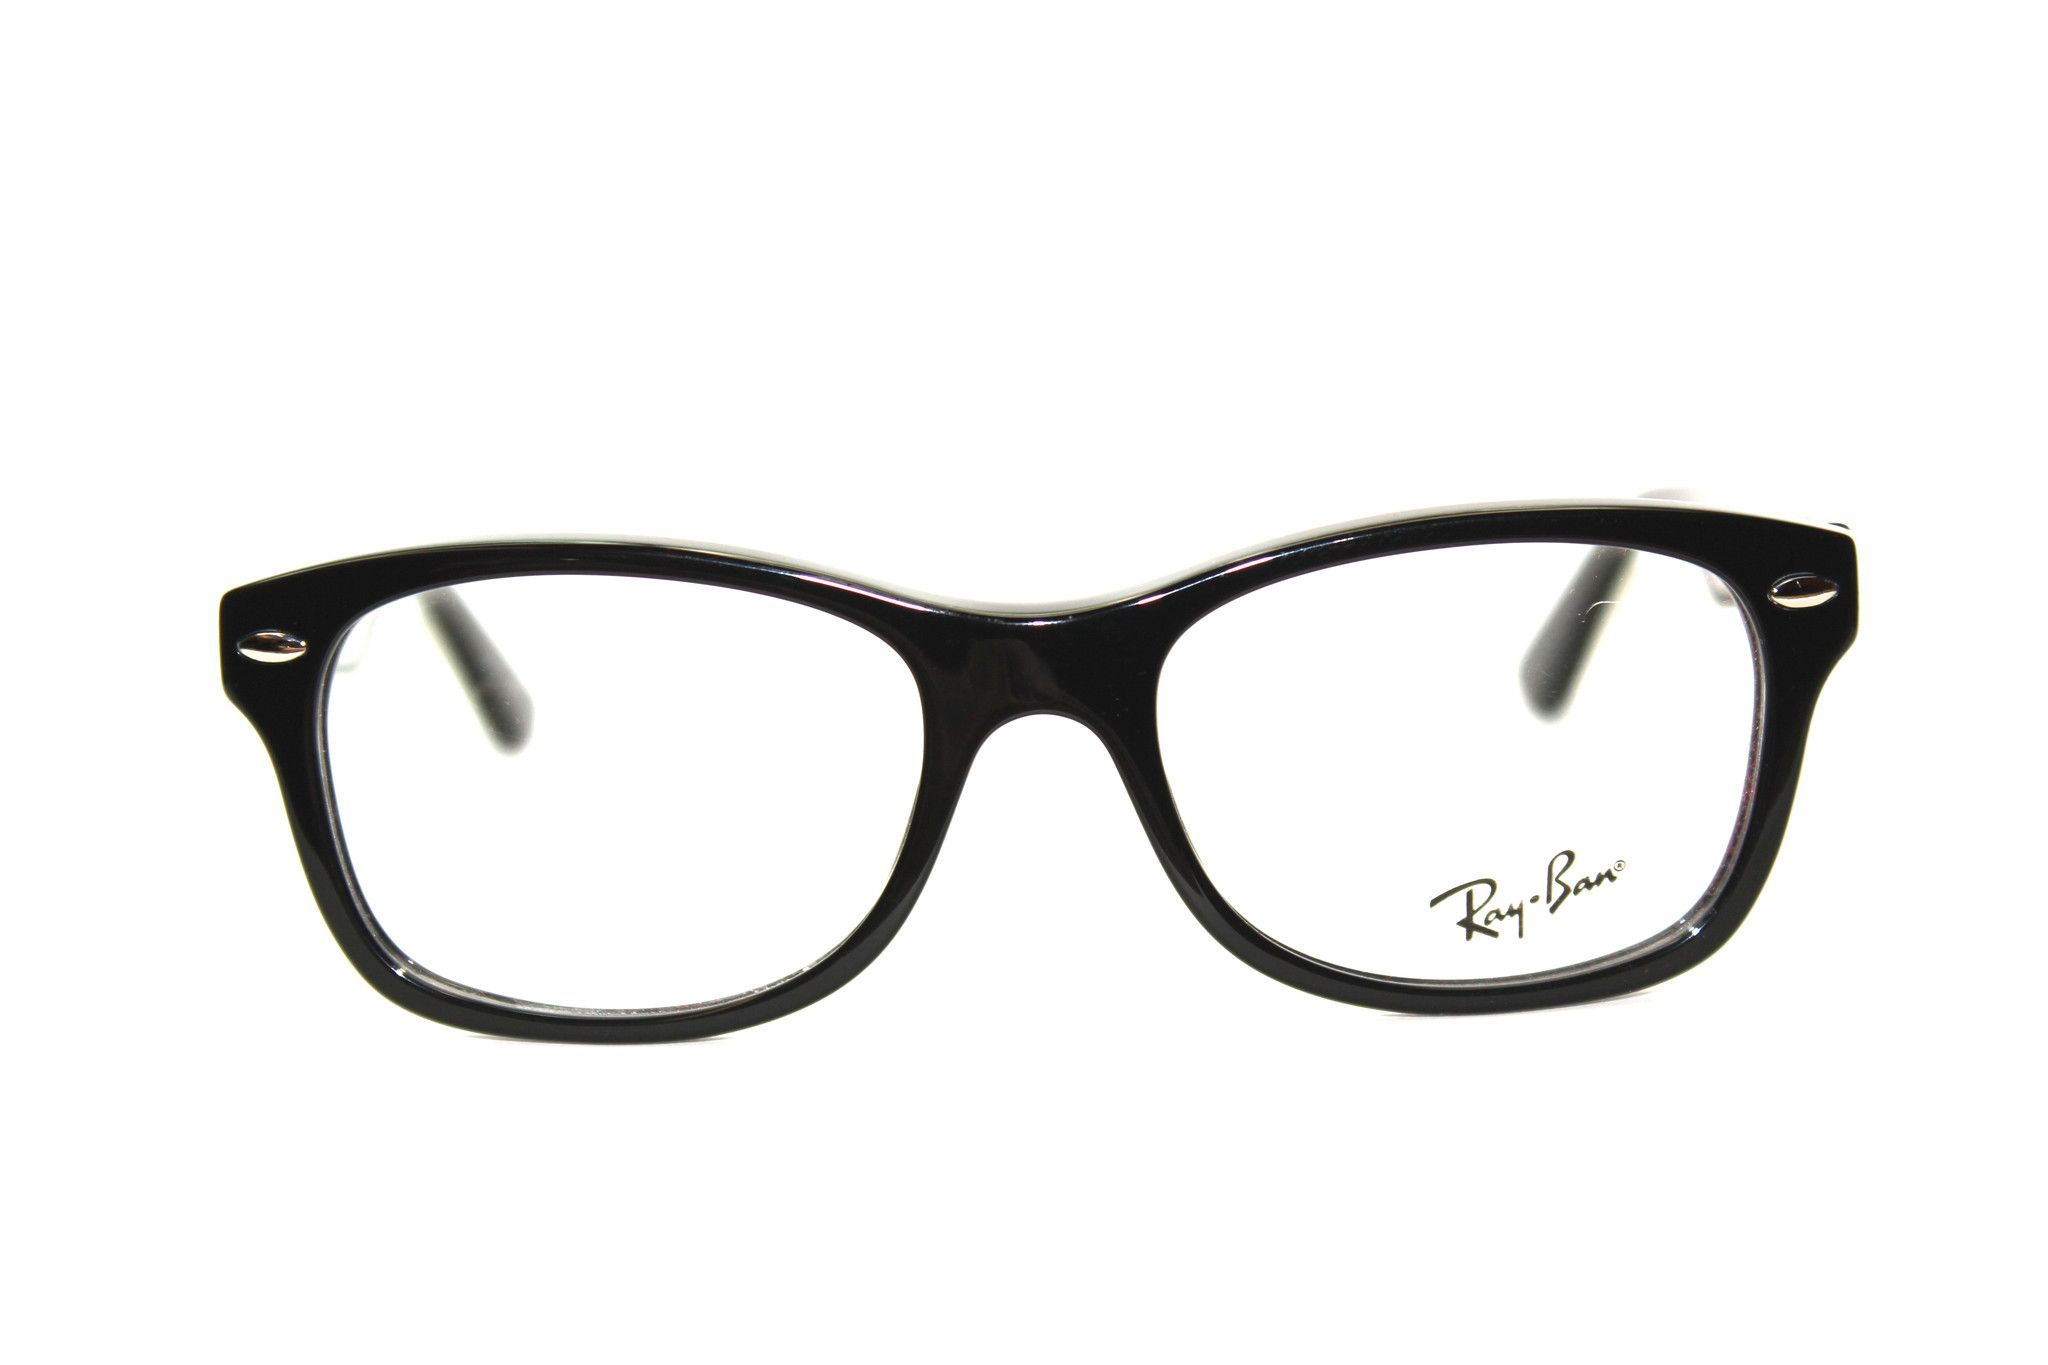 a532db26735 Ray-Ban Junior RY1528 are a charming kid-sized version of the classic  Wayfarer glasses. - Great for Boys or Girls. - Full rim frame made from  lustrous